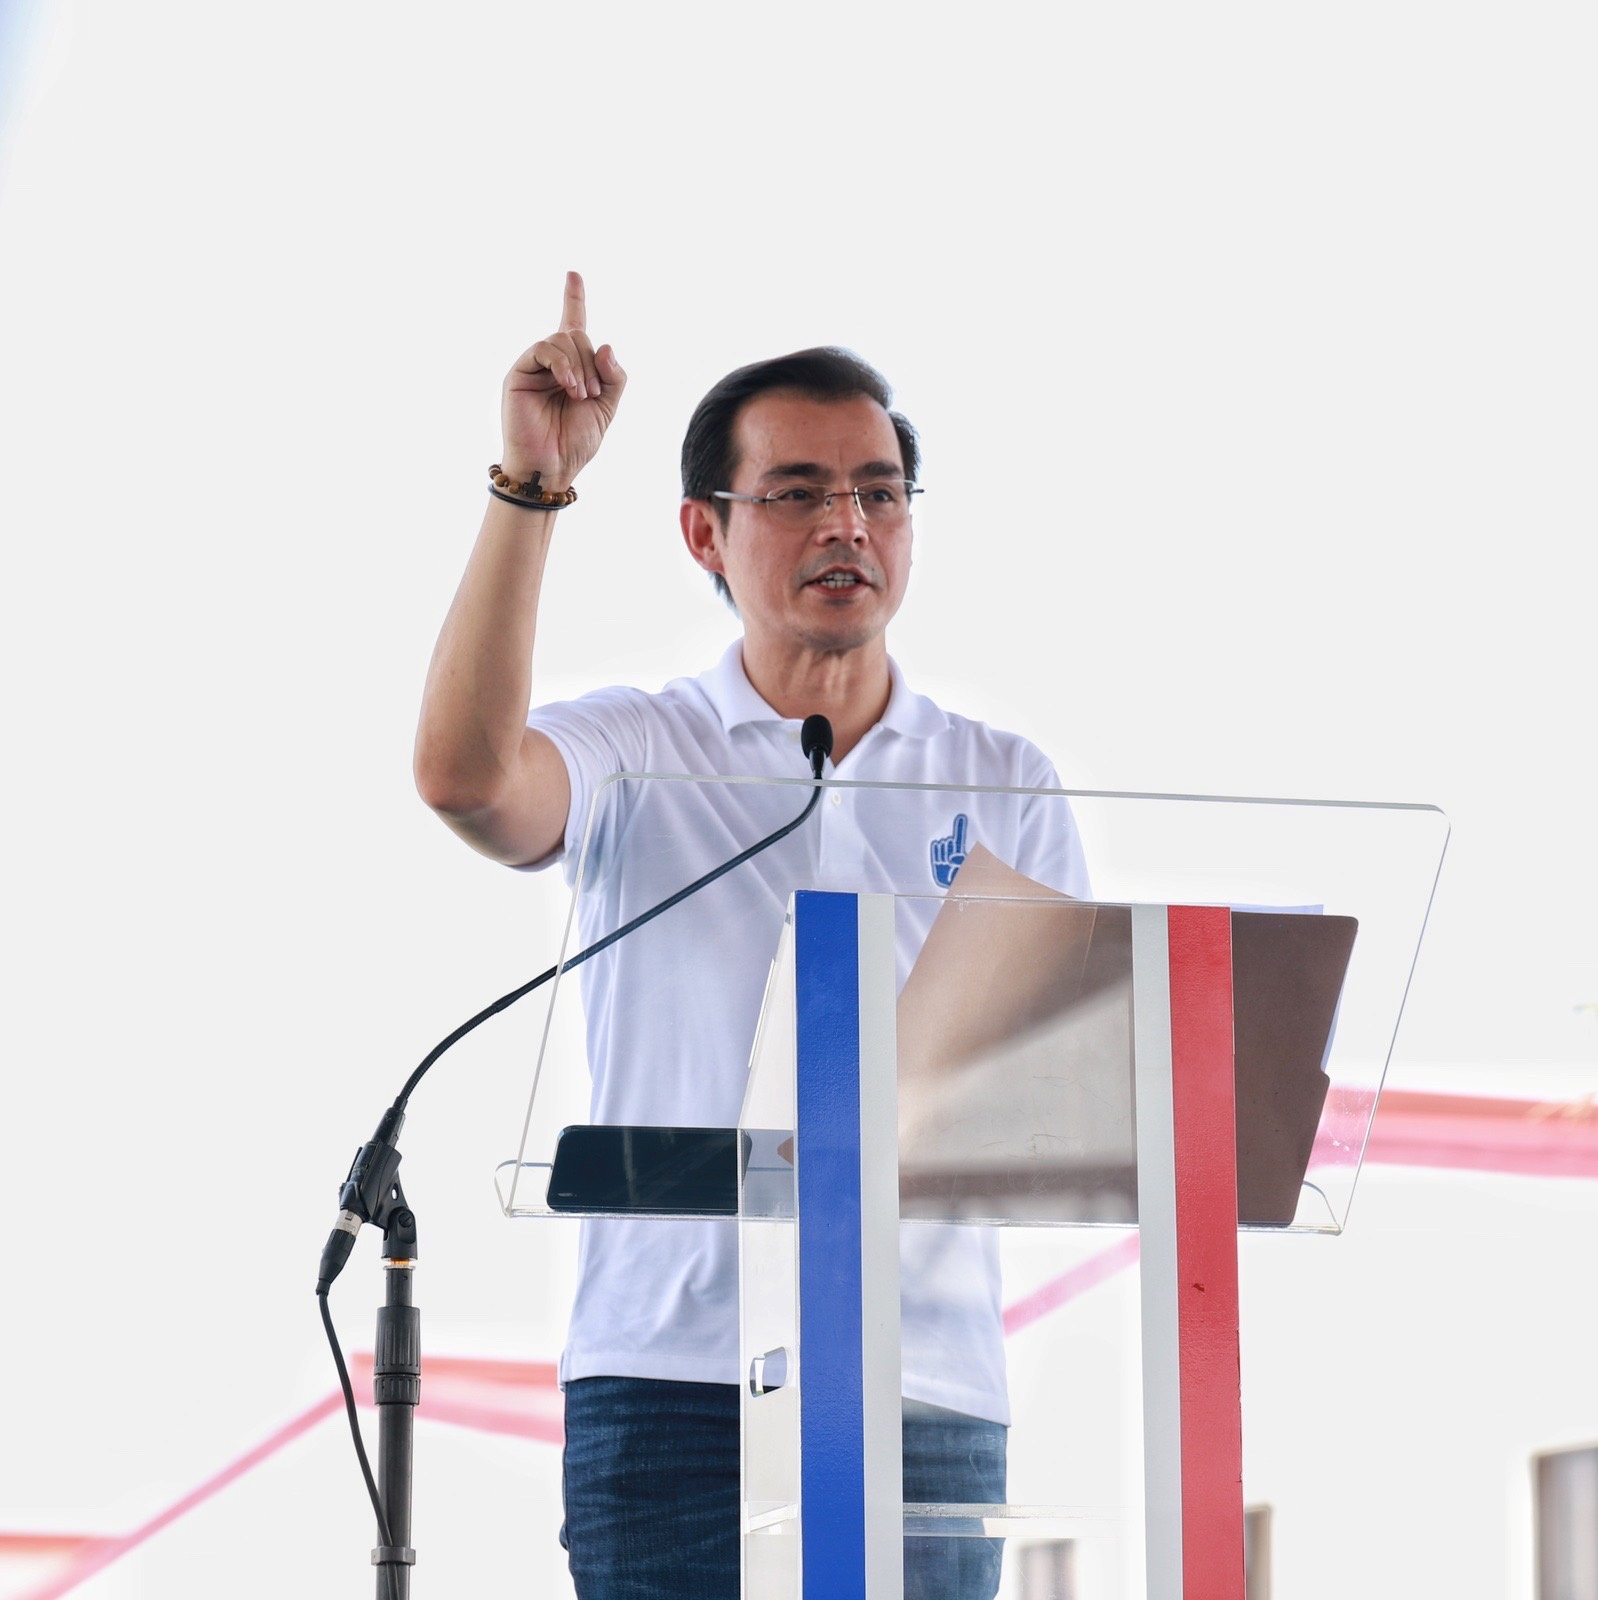 Manila Mayor Francisco 'Isko' Moreno Domagoso gestures during the official announcement of his presidential bid in the 2022 national elections in a poor community in Baseco, Manila, Philippines, September 22, 2021. ISKO MORENO COMMUNICATIONS TEAM/Handout via REUTERS